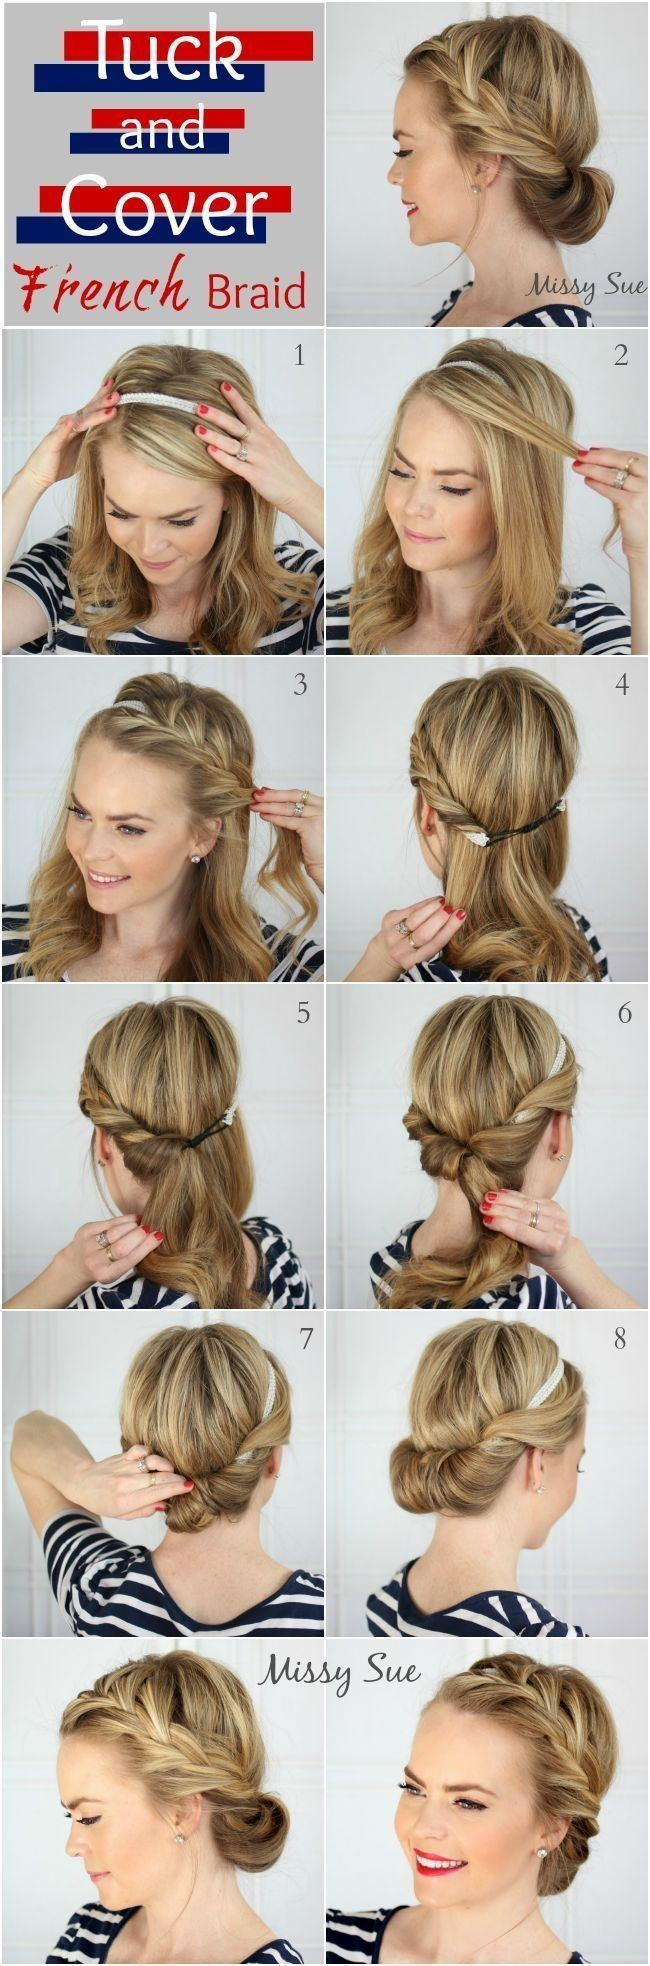 16 Easy Ways To Style Your Hair 2 Is Perfect For Summer Long Hair Tutorial Hair Styles Long Hair Styles